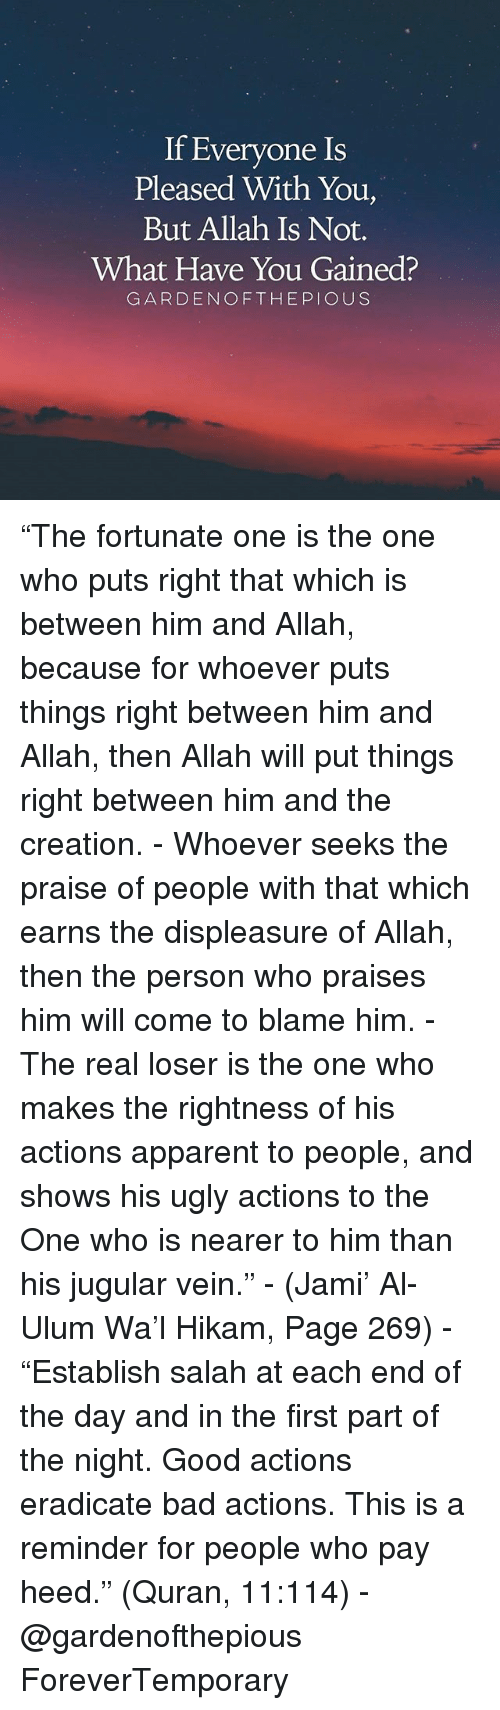 """Jami: If Everyone Is  Pleased With You,  But Allah Is Not.  What Have You Gained?  GARDEN OF THE PIOUS """"The fortunate one is the one who puts right that which is between him and Allah, because for whoever puts things right between him and Allah, then Allah will put things right between him and the creation. - Whoever seeks the praise of people with that which earns the displeasure of Allah, then the person who praises him will come to blame him. - The real loser is the one who makes the rightness of his actions apparent to people, and shows his ugly actions to the One who is nearer to him than his jugular vein."""" - (Jami' Al-Ulum Wa'l Hikam, Page 269) - """"Establish salah at each end of the day and in the first part of the night. Good actions eradicate bad actions. This is a reminder for people who pay heed."""" (Quran, 11:114) - @gardenofthepious ForeverTemporary"""